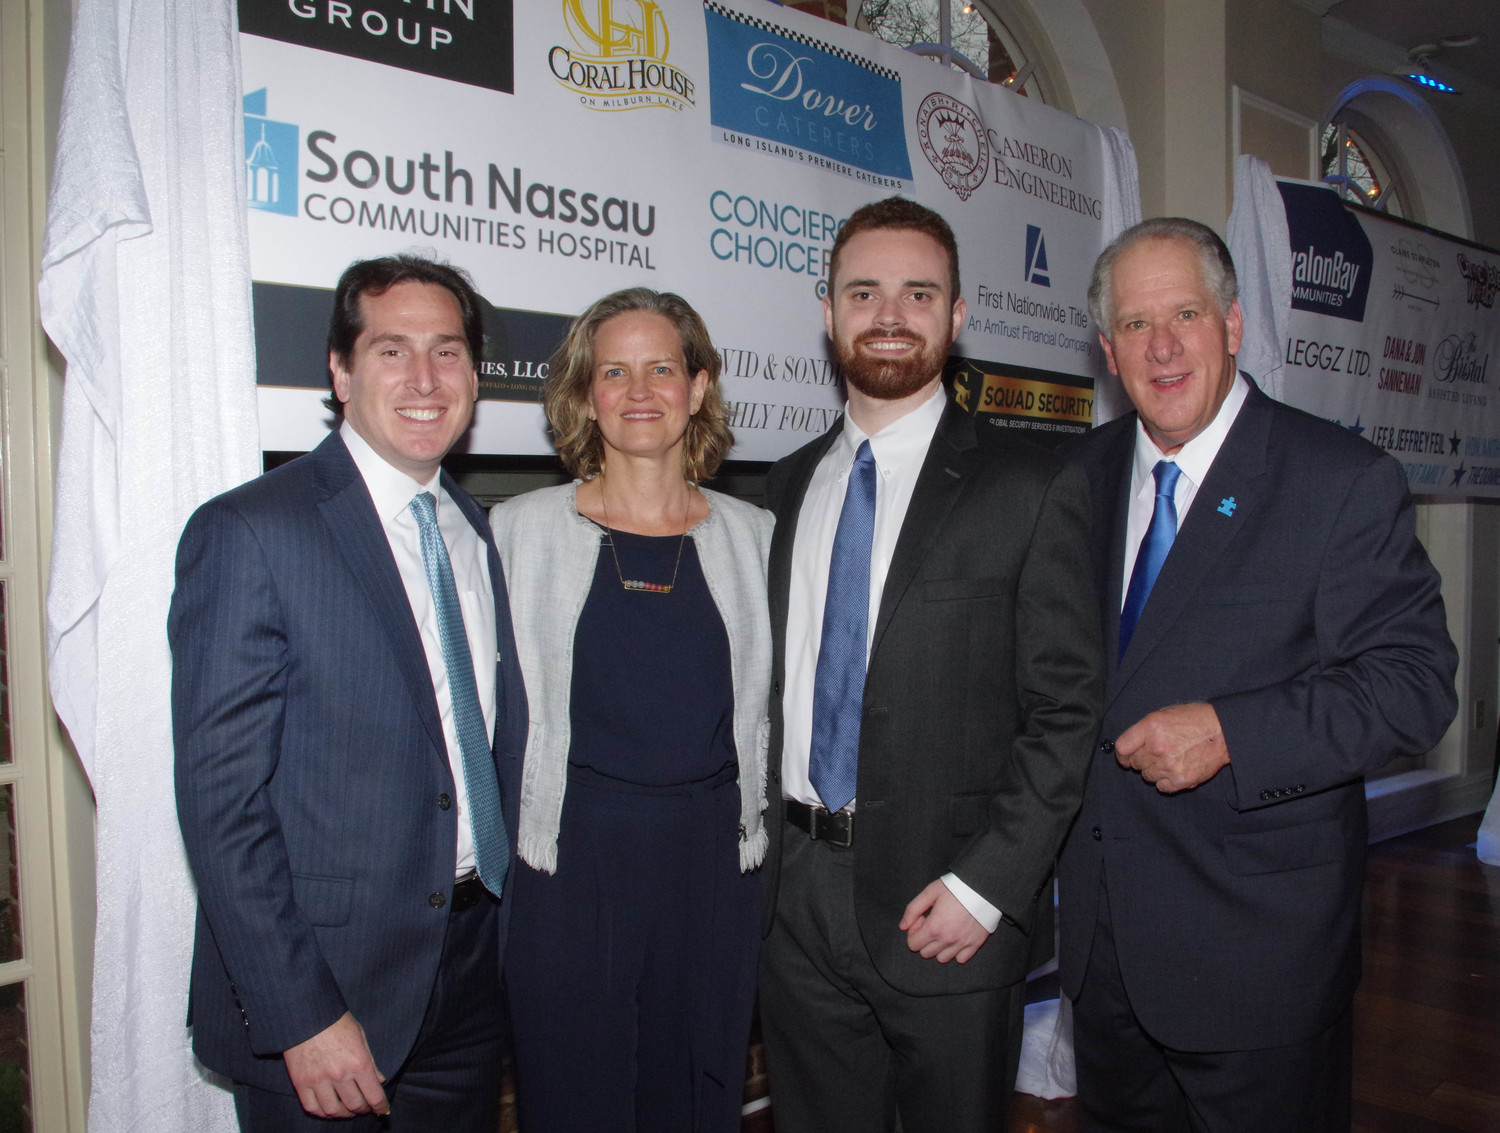 State Sen. Todd Kaminsky, left, Nassau County Executive Laura Curran, resident Sean Culkin, who was presented with the Courage Award and Tony Cancellieri, co-founder of RVC Blue Speaks.